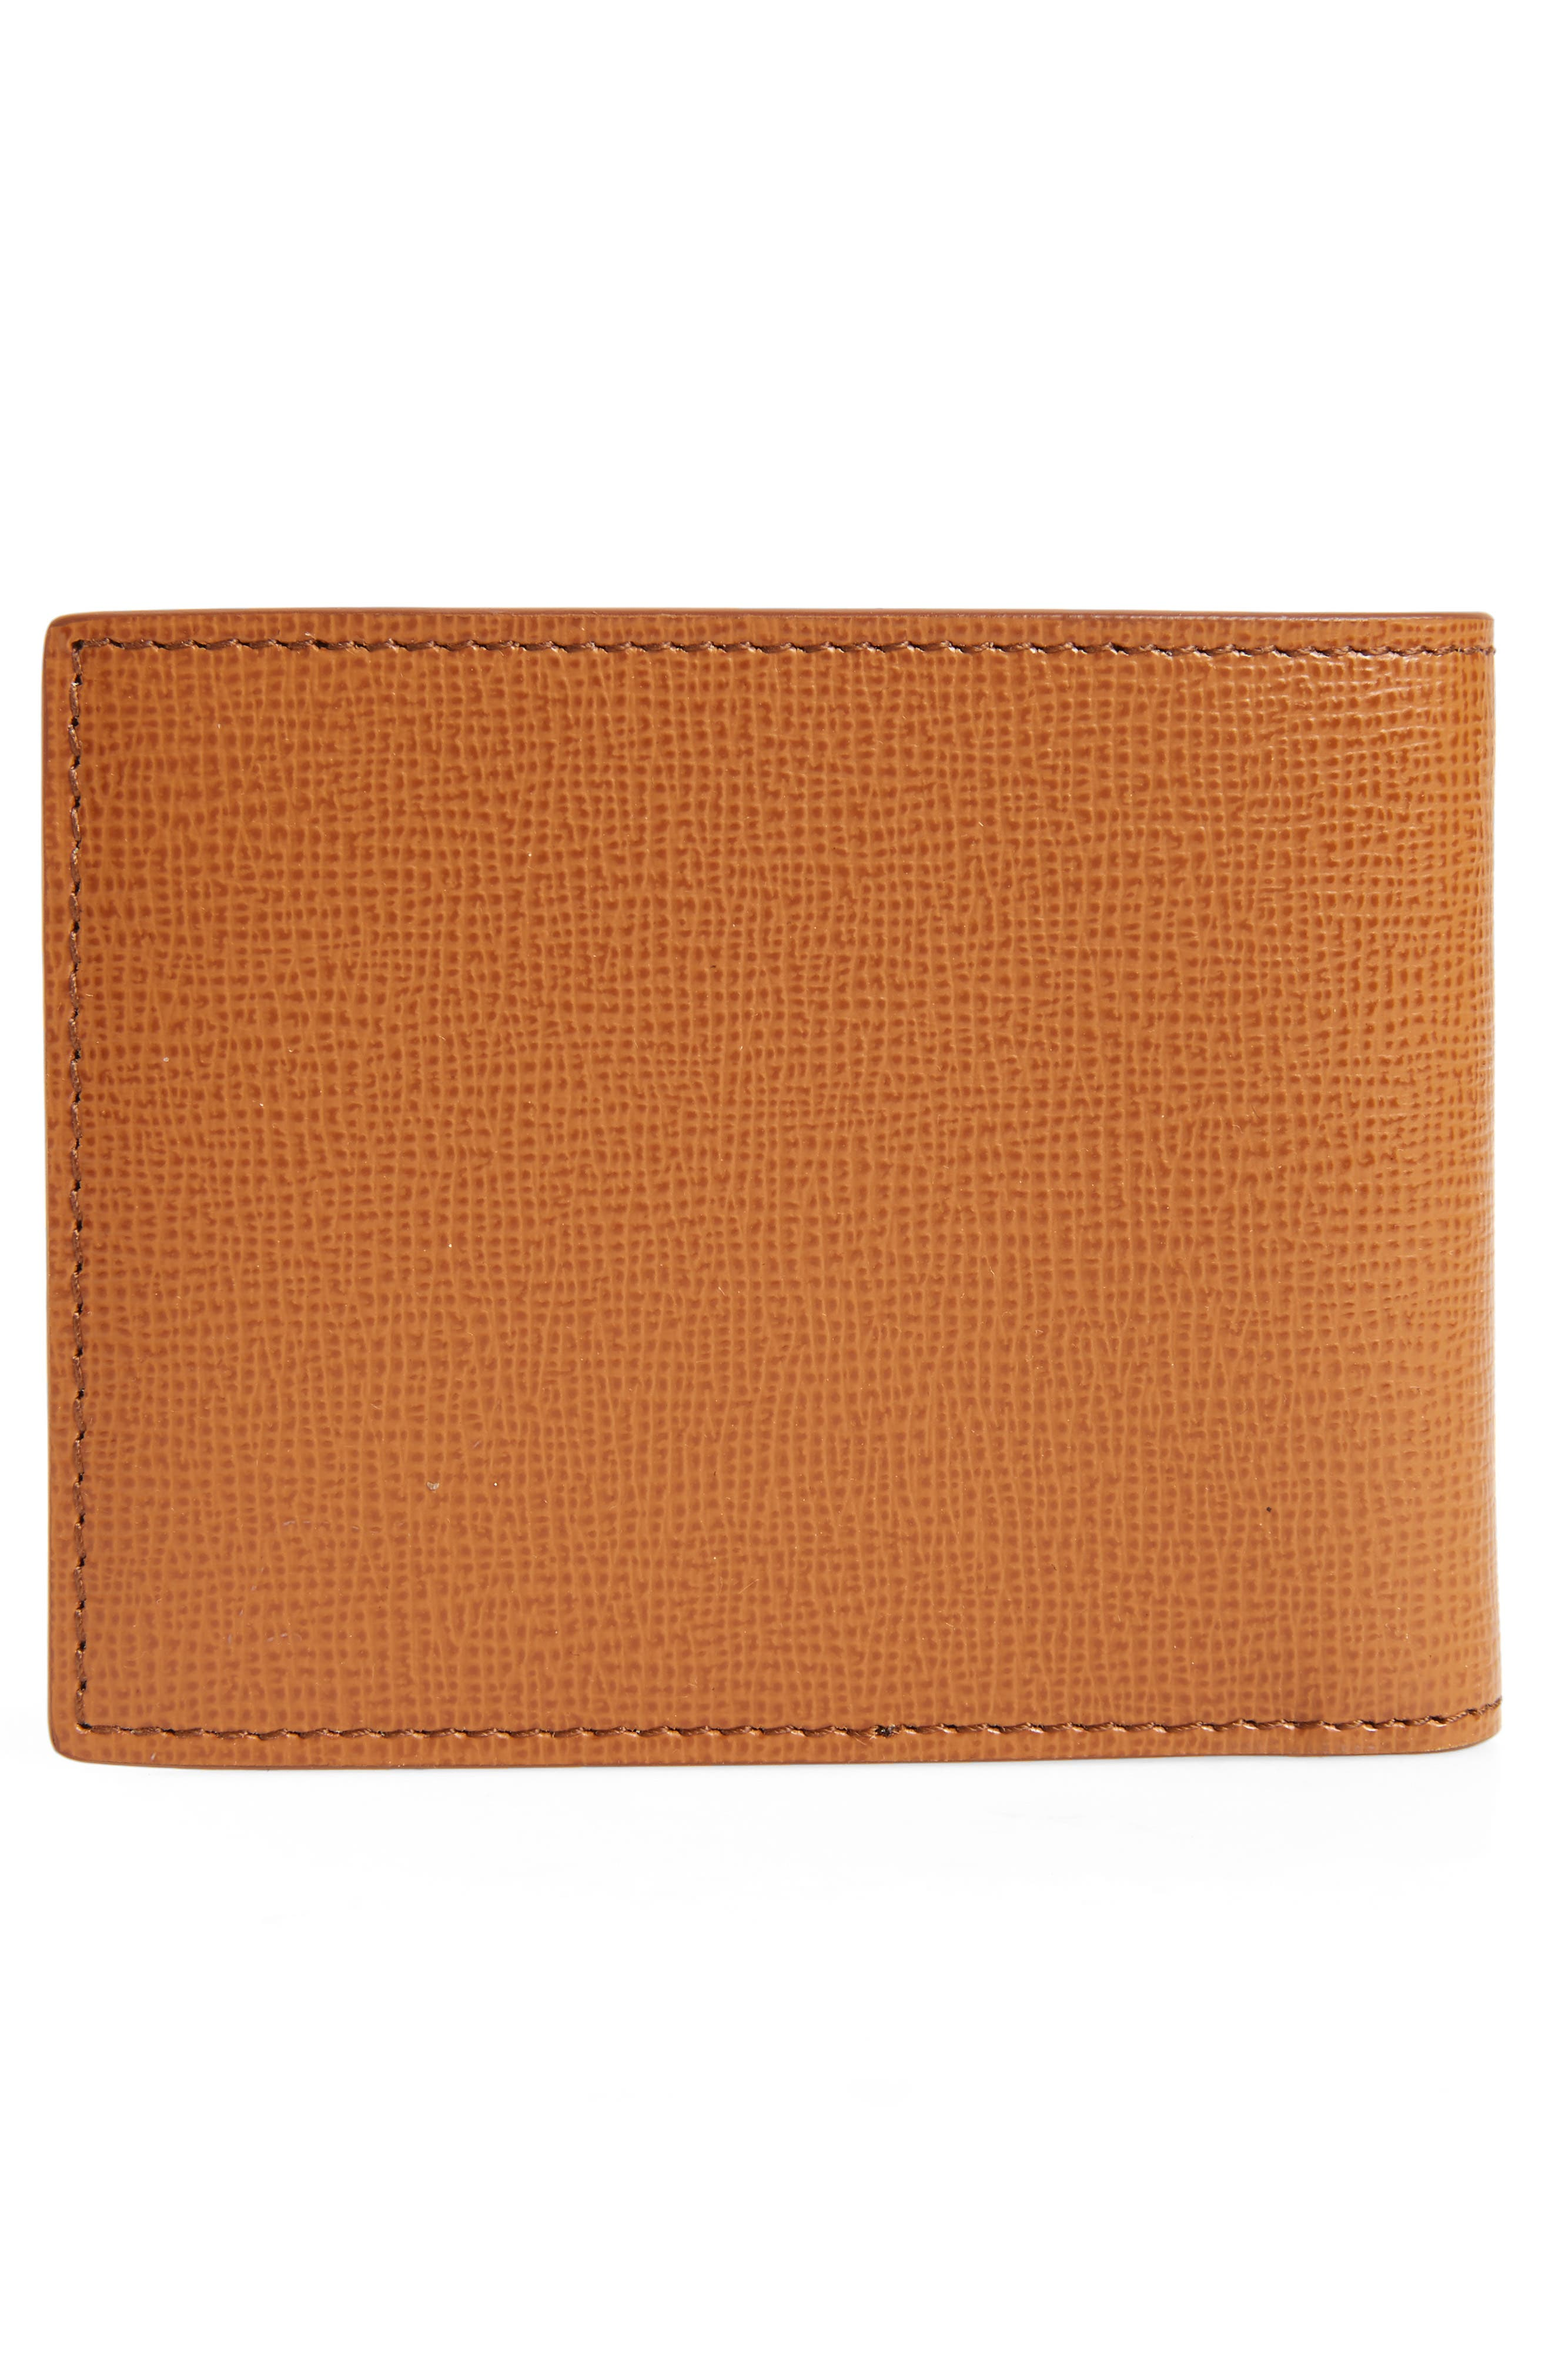 Leather Bifold Wallet,                             Alternate thumbnail 3, color,                             250